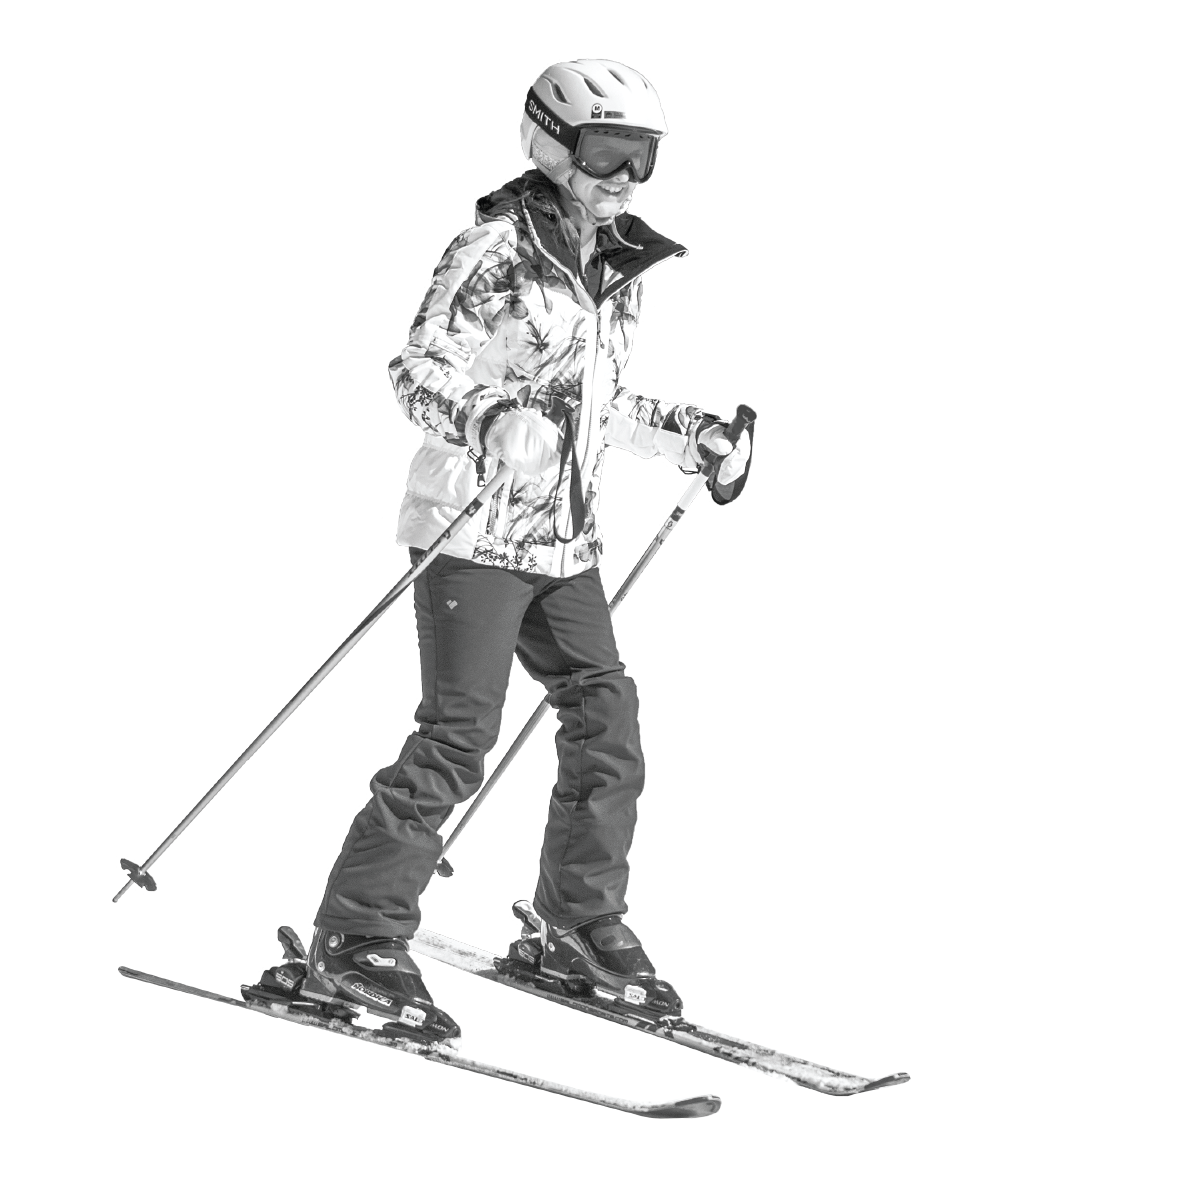 Girl snow skiing in black and white